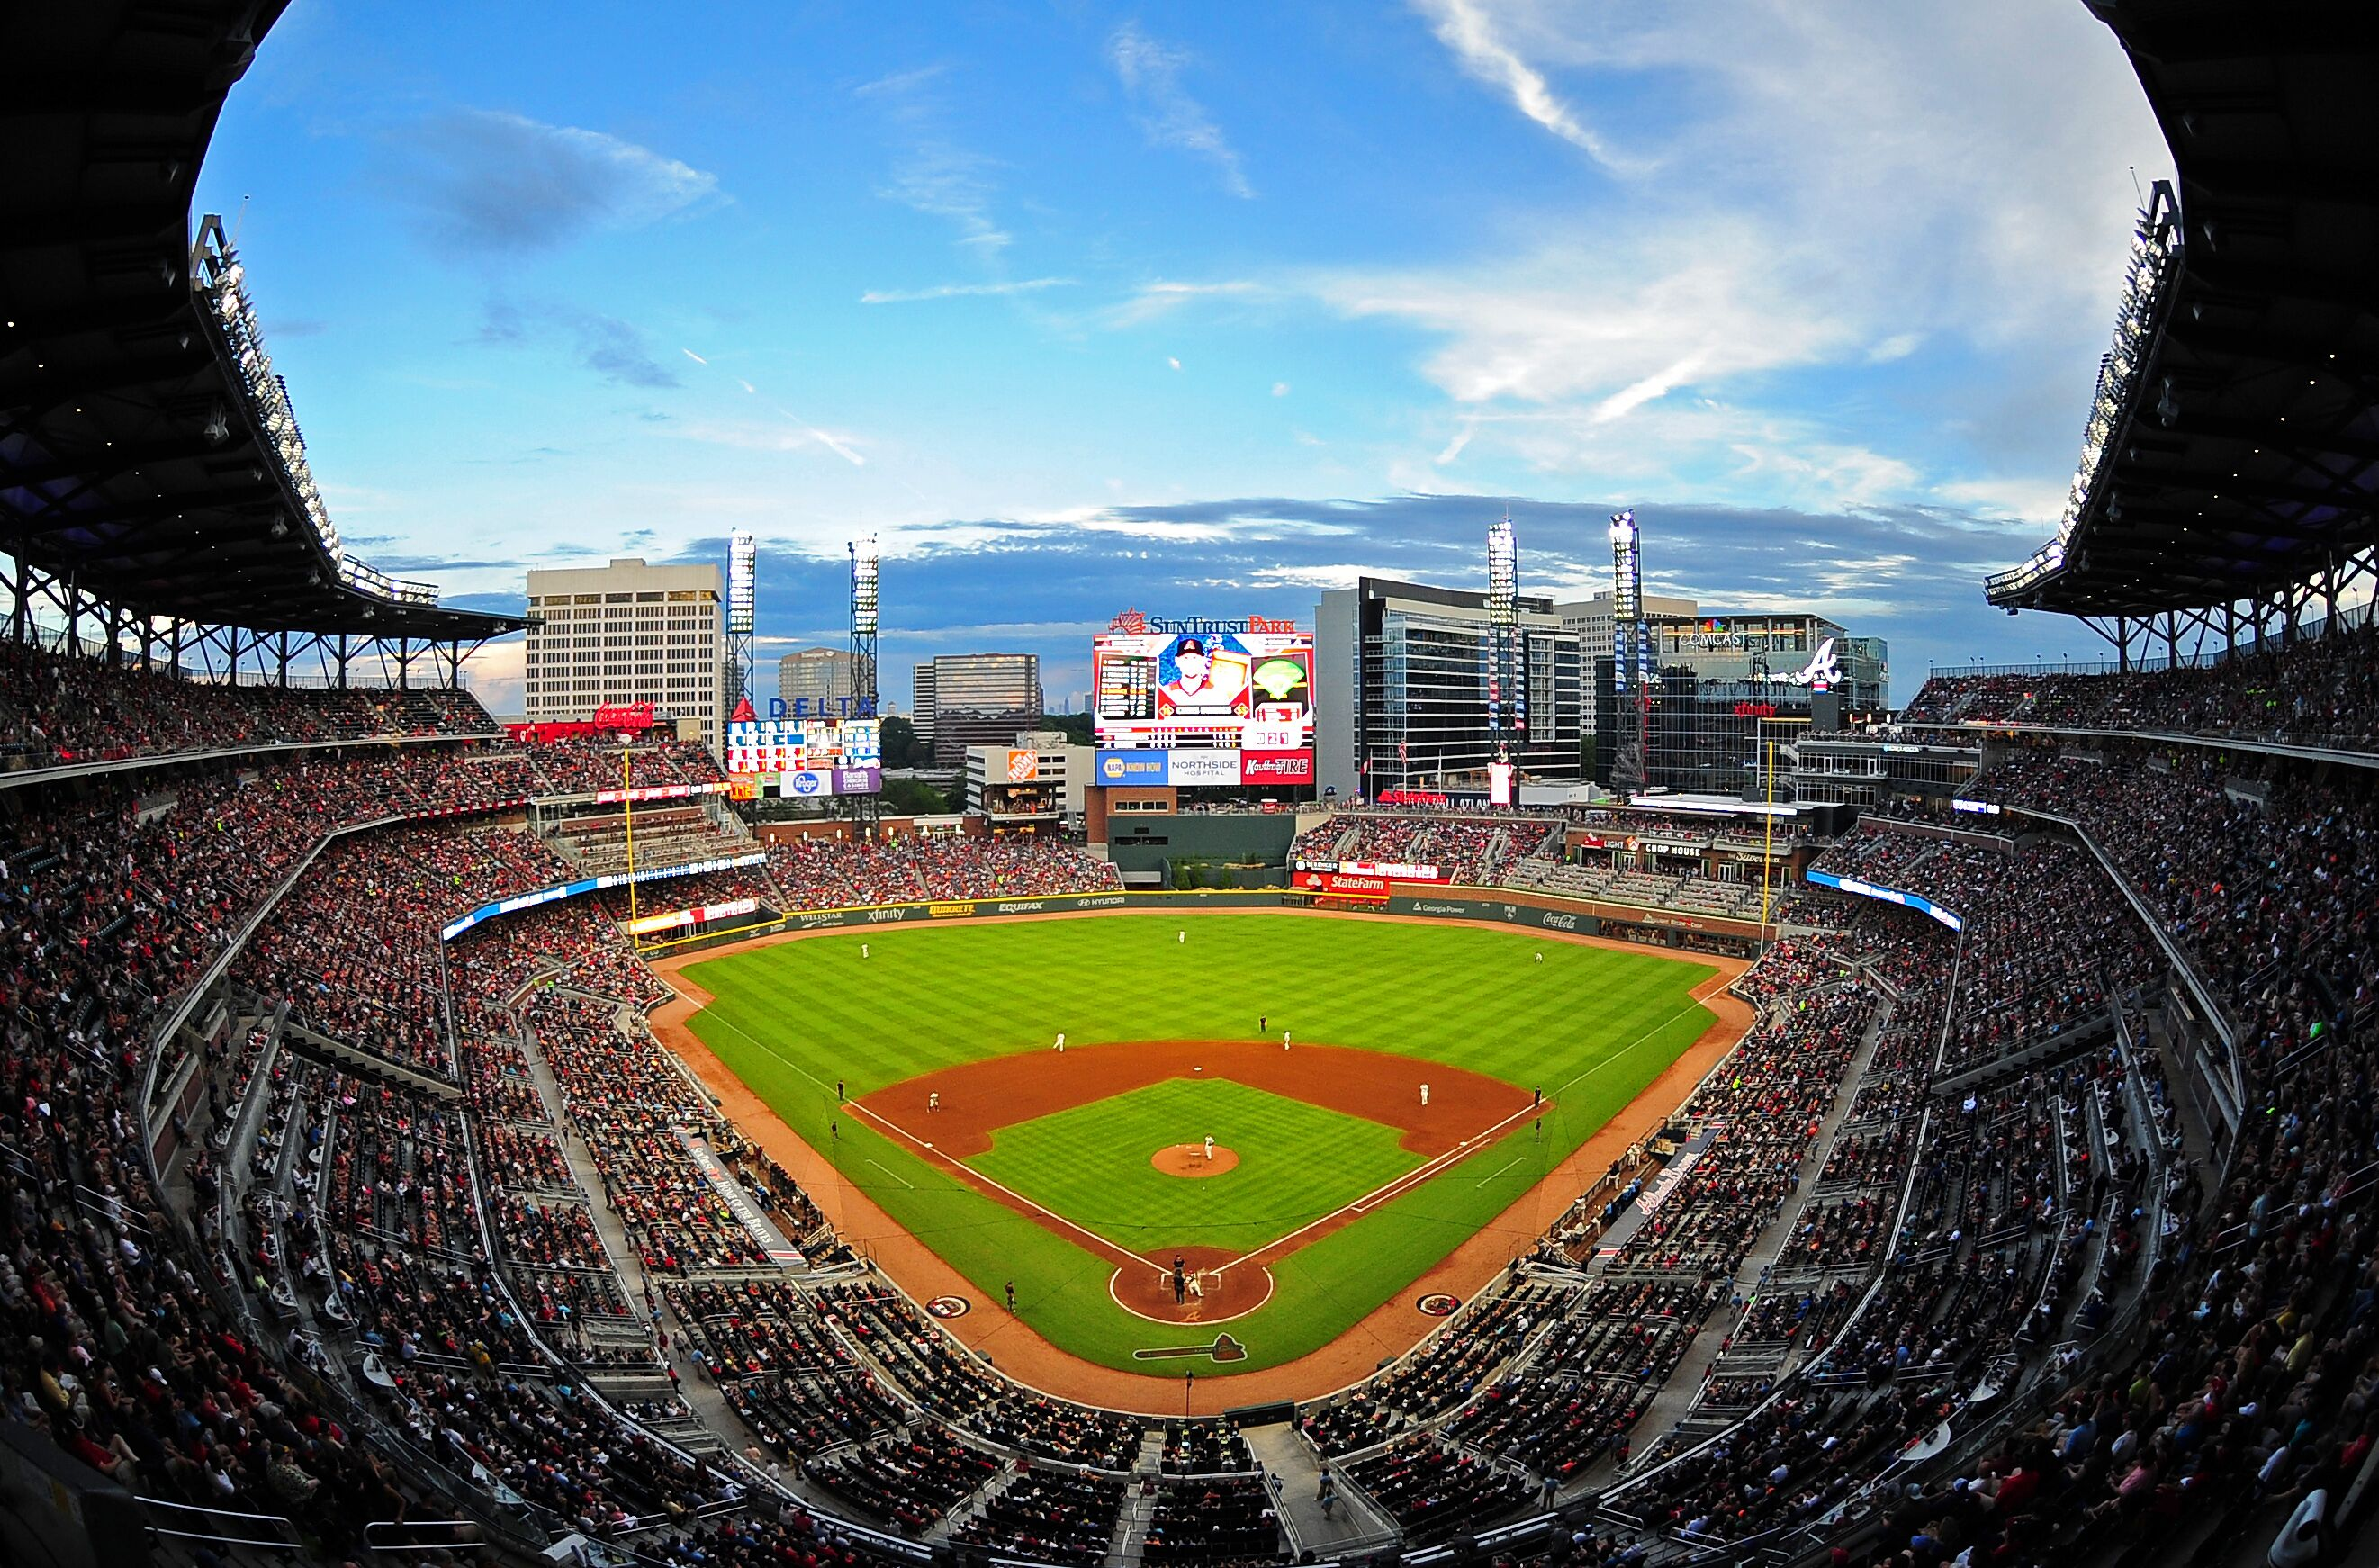 815155766-arizona-diamondbacks-v-atlanta-braves.jpg